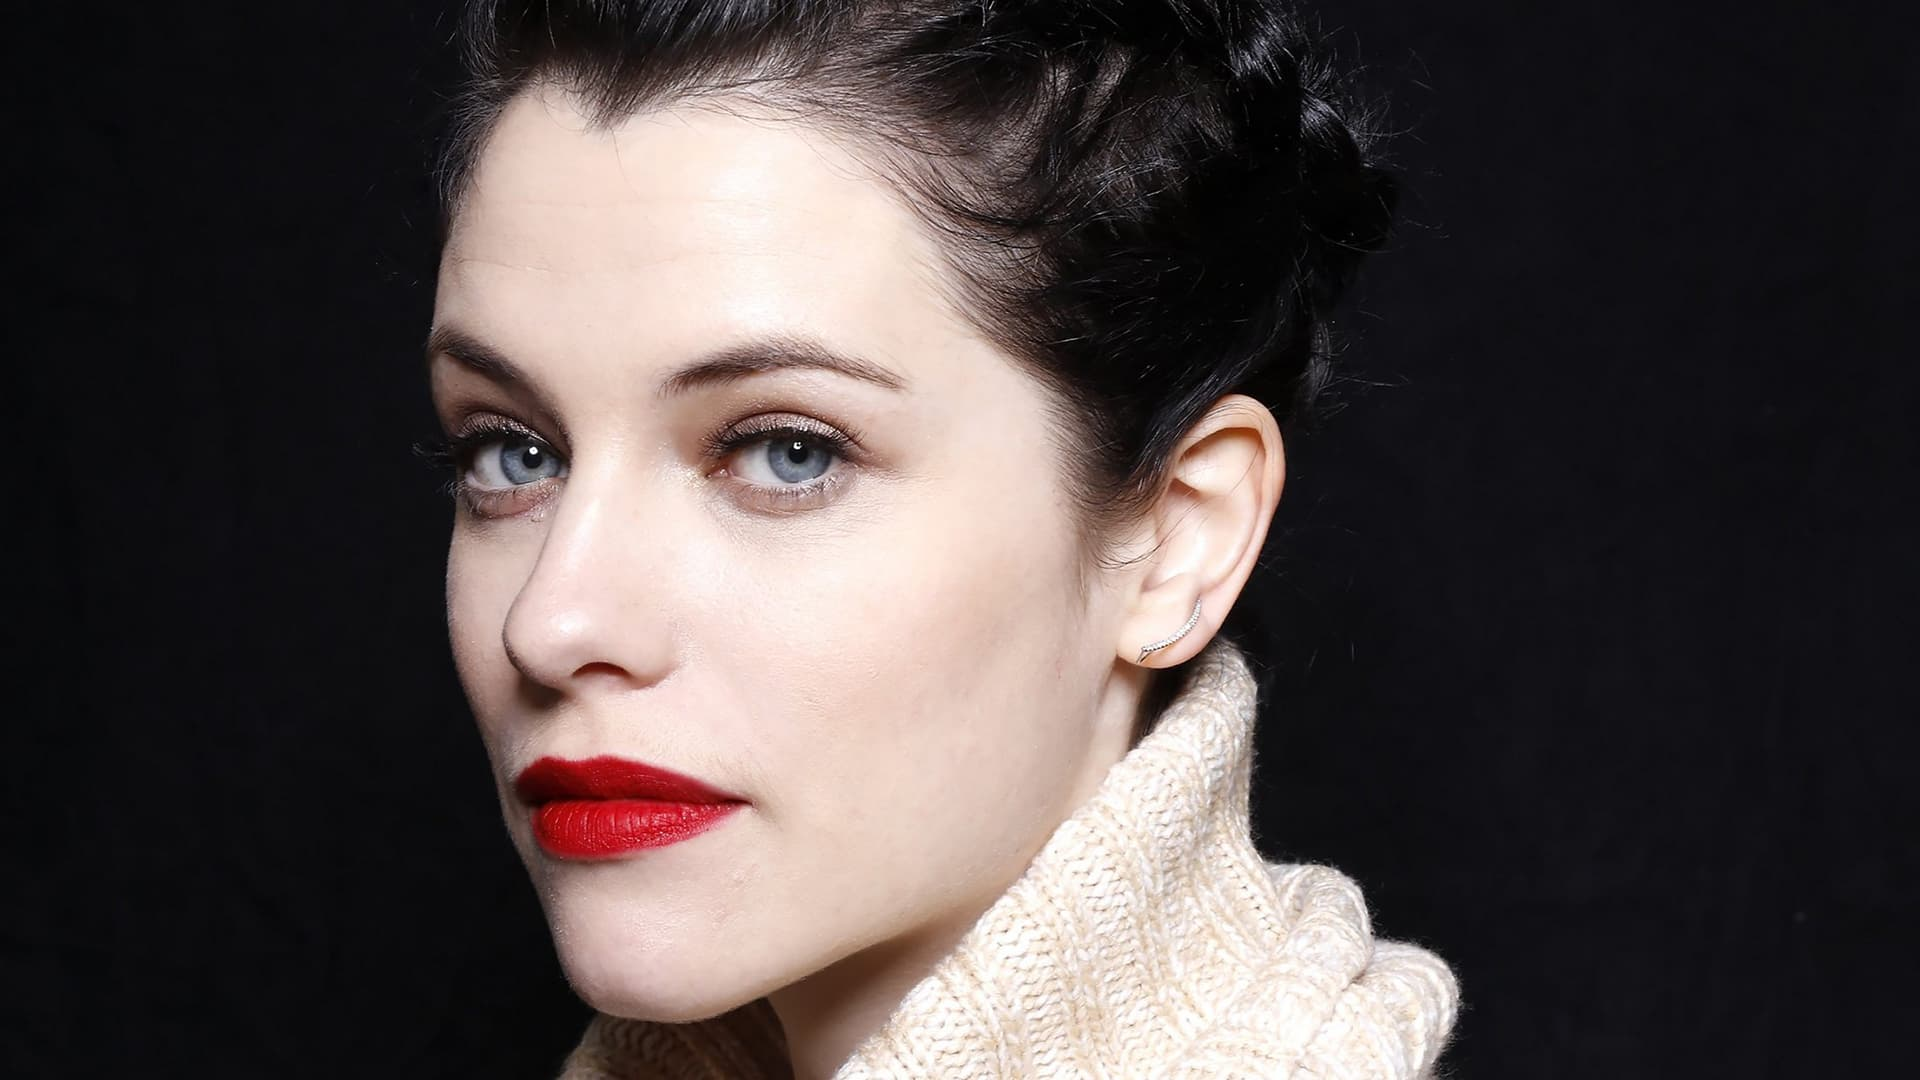 eyes Jessica De Gouw wallpapers